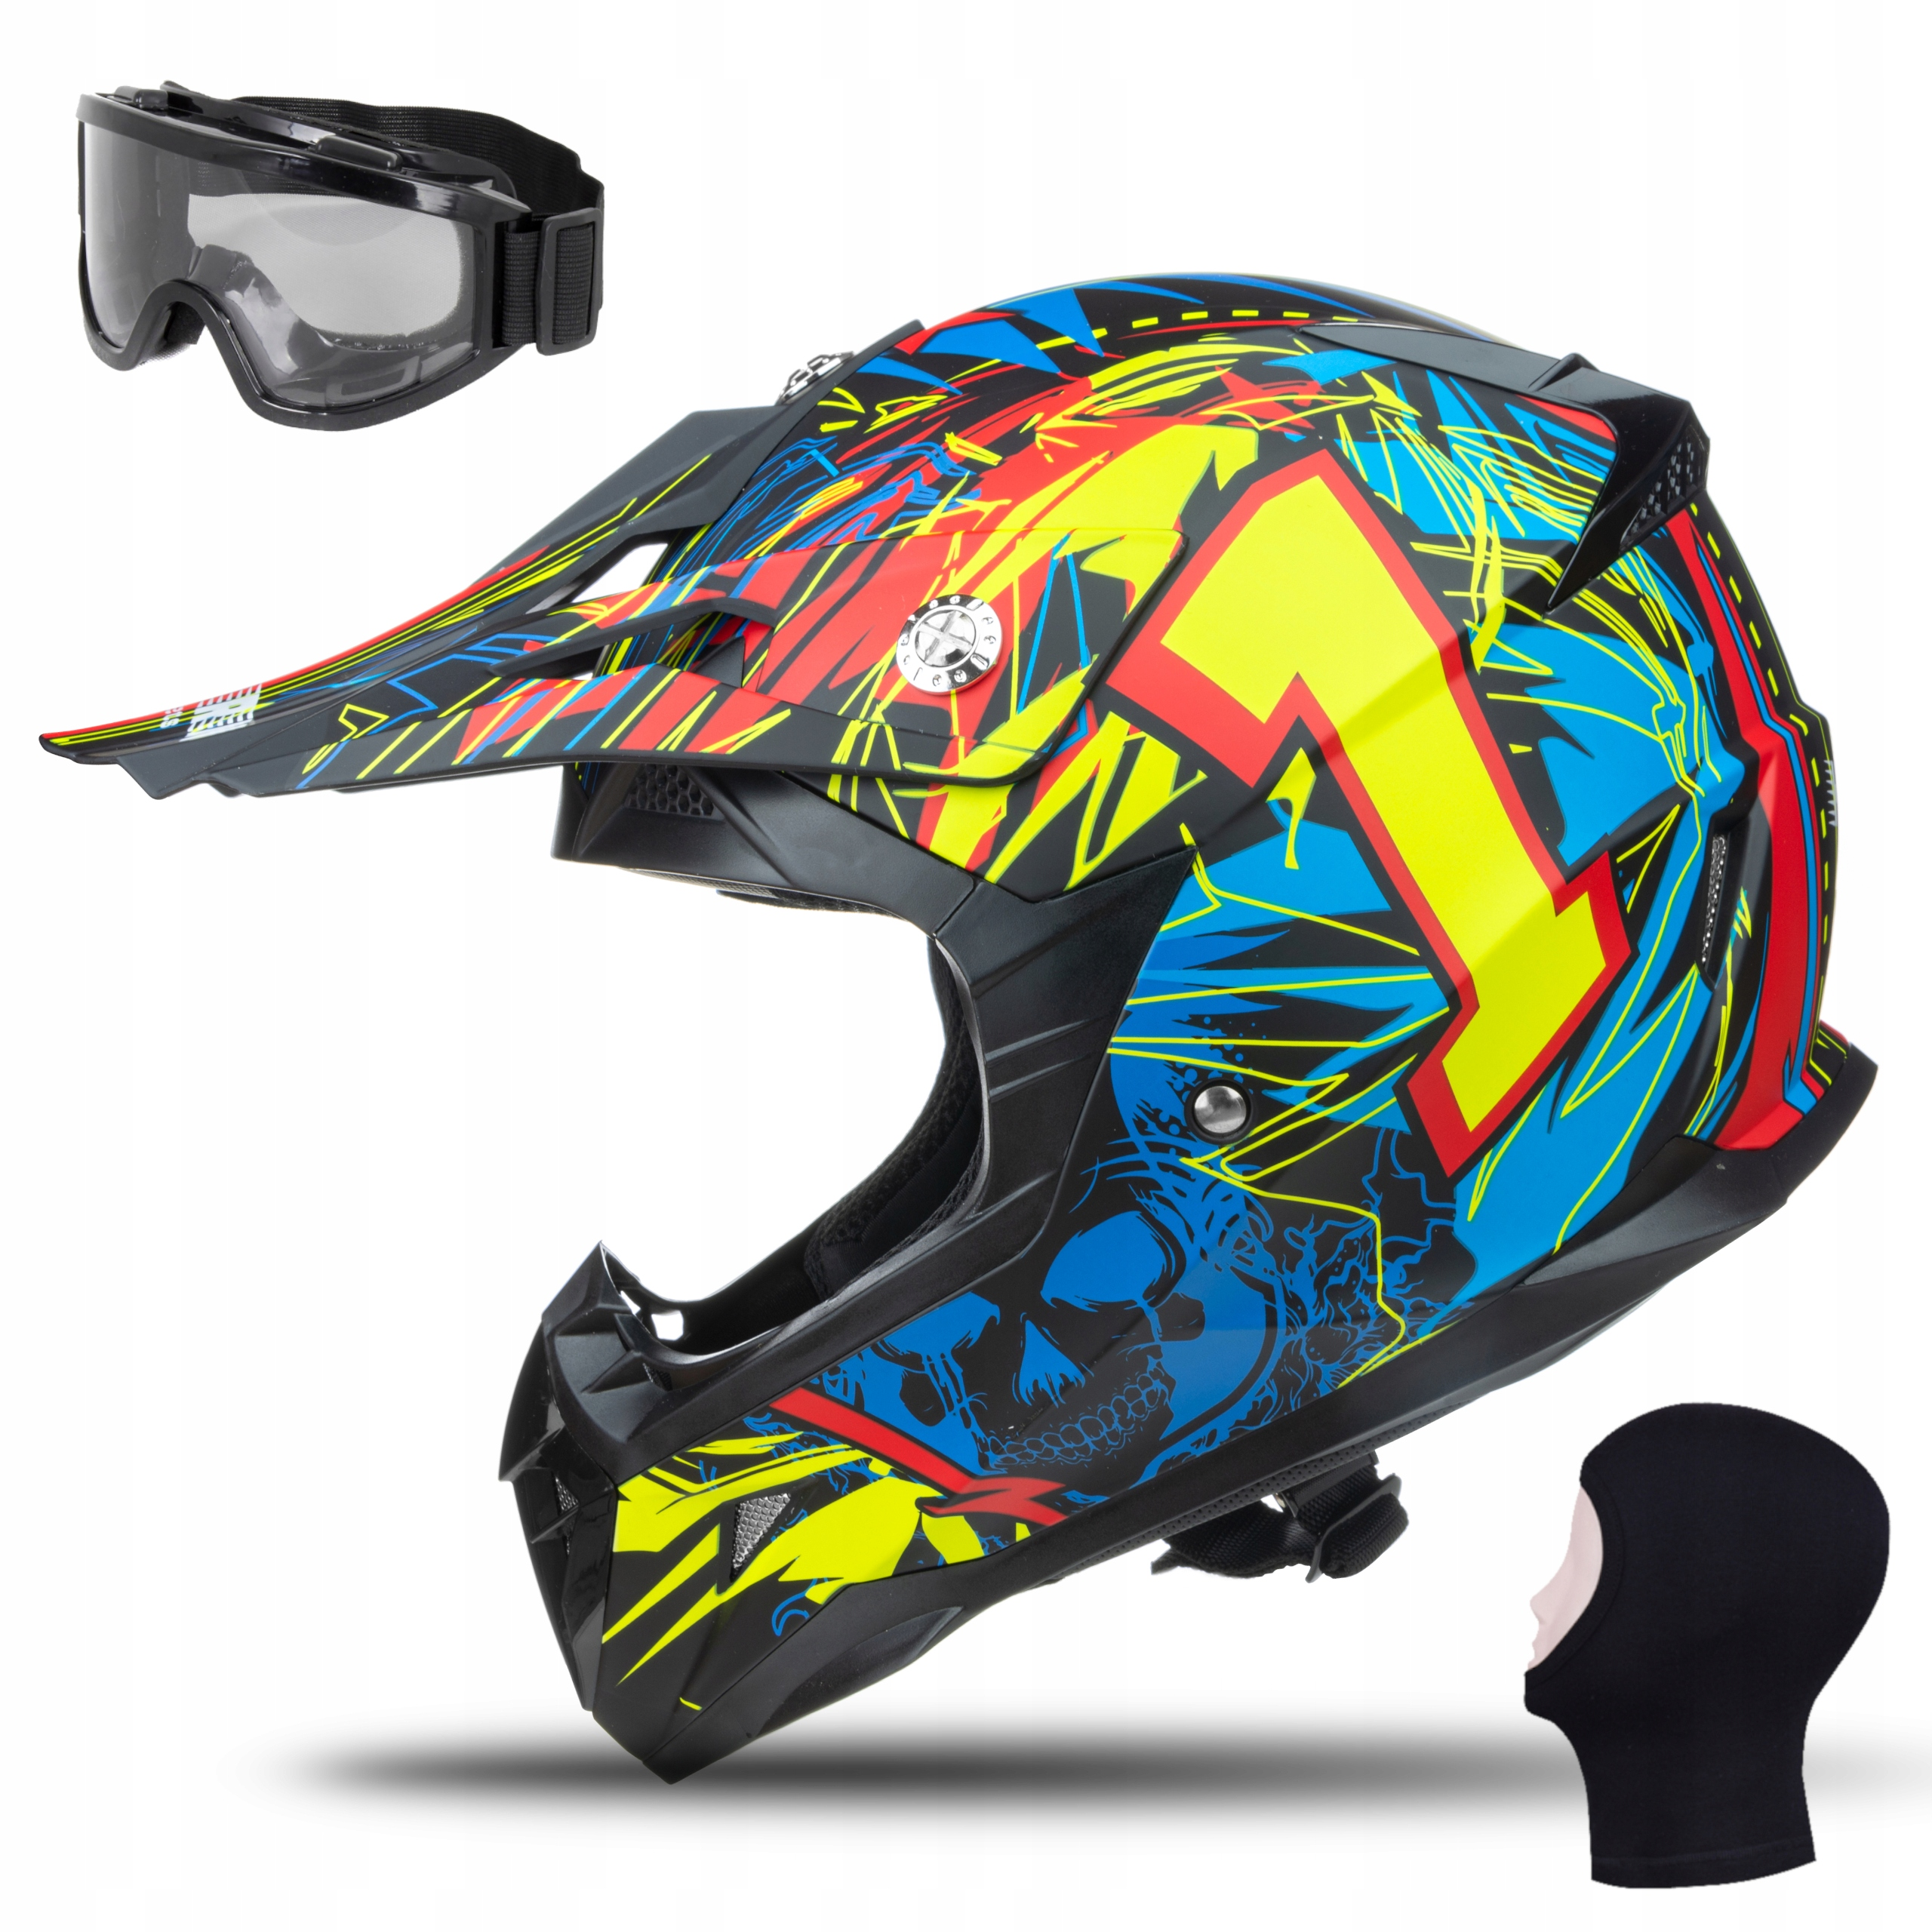 МОТОЦИКЛЕТНЫЙ ШЛЕМ JUNIOR HORN CROSS GOGGLE S